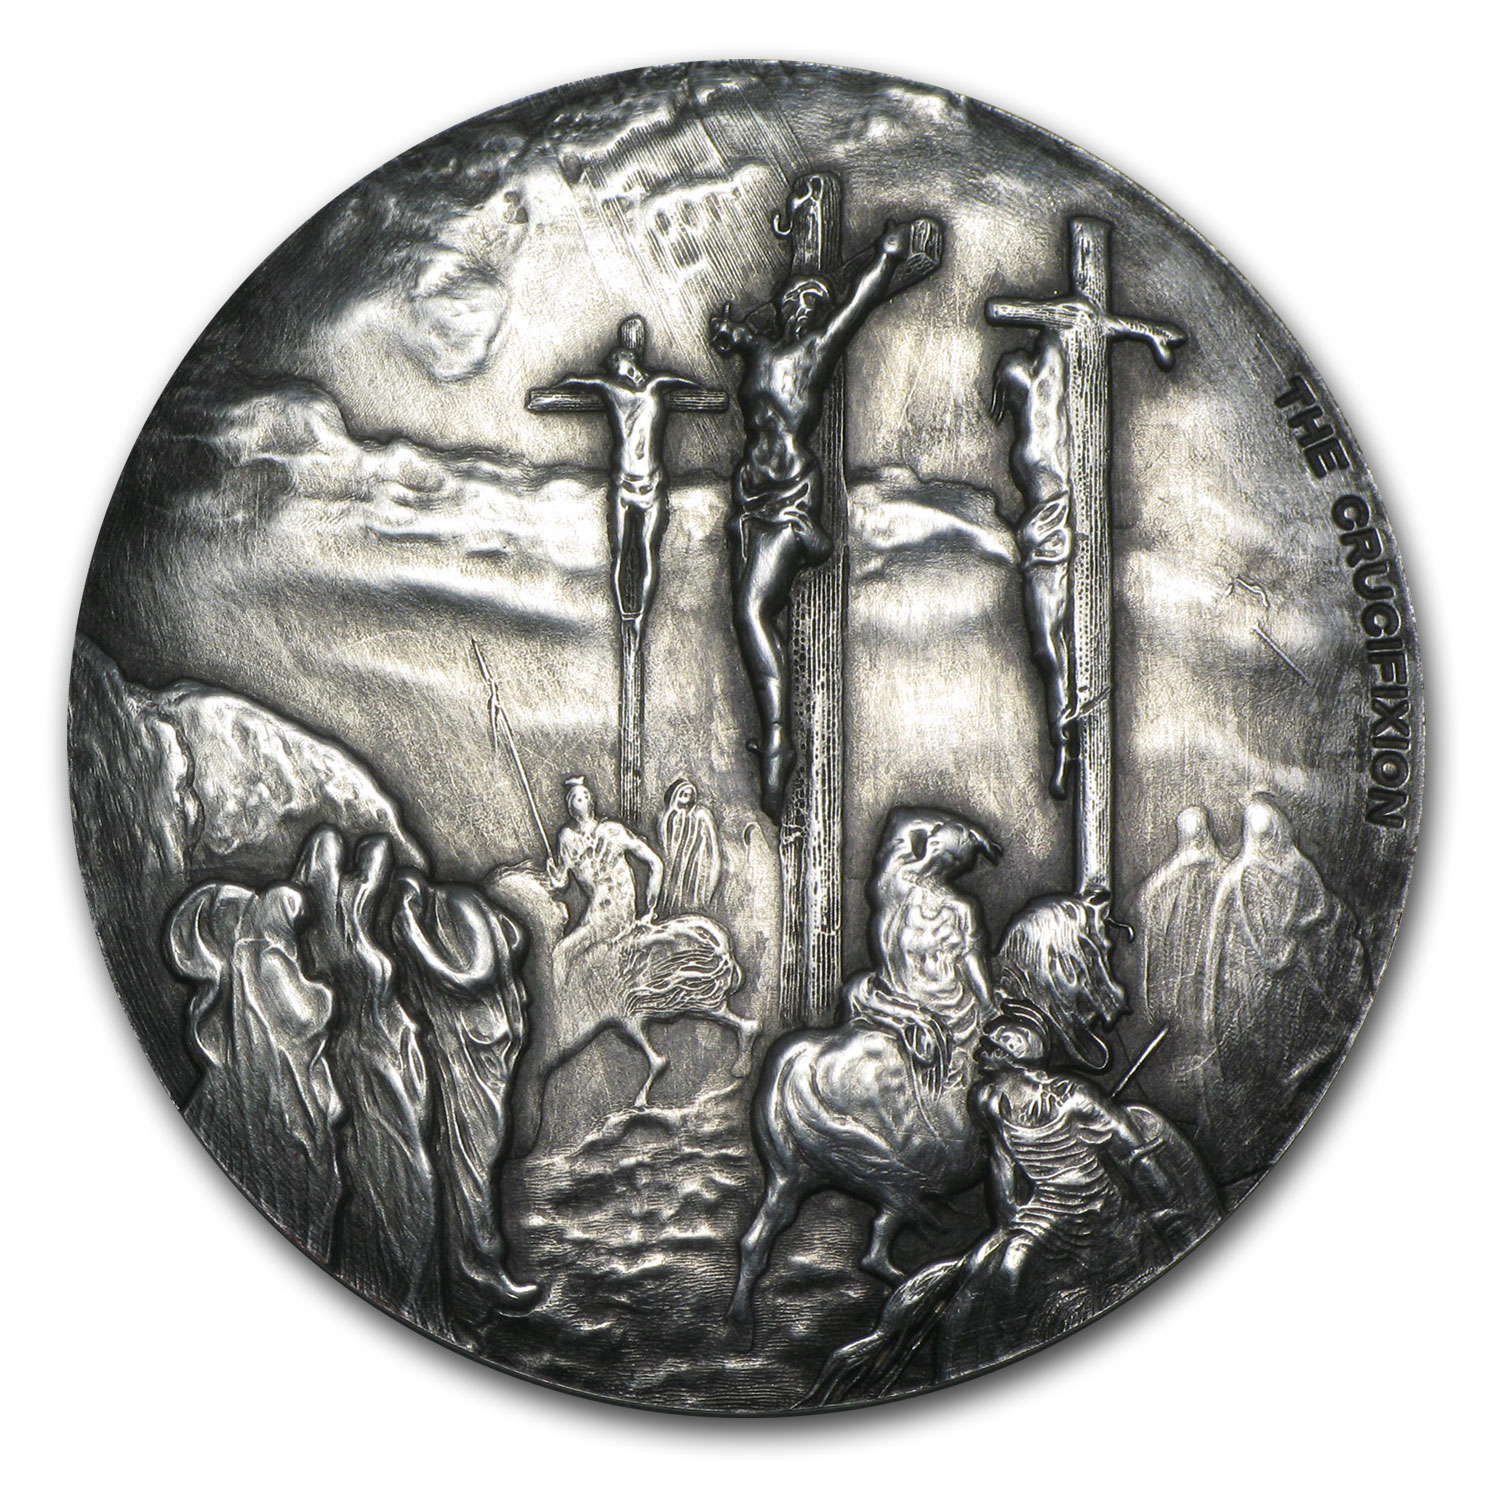 2 oz Silver Coin - Biblical Series (Crucifixion)